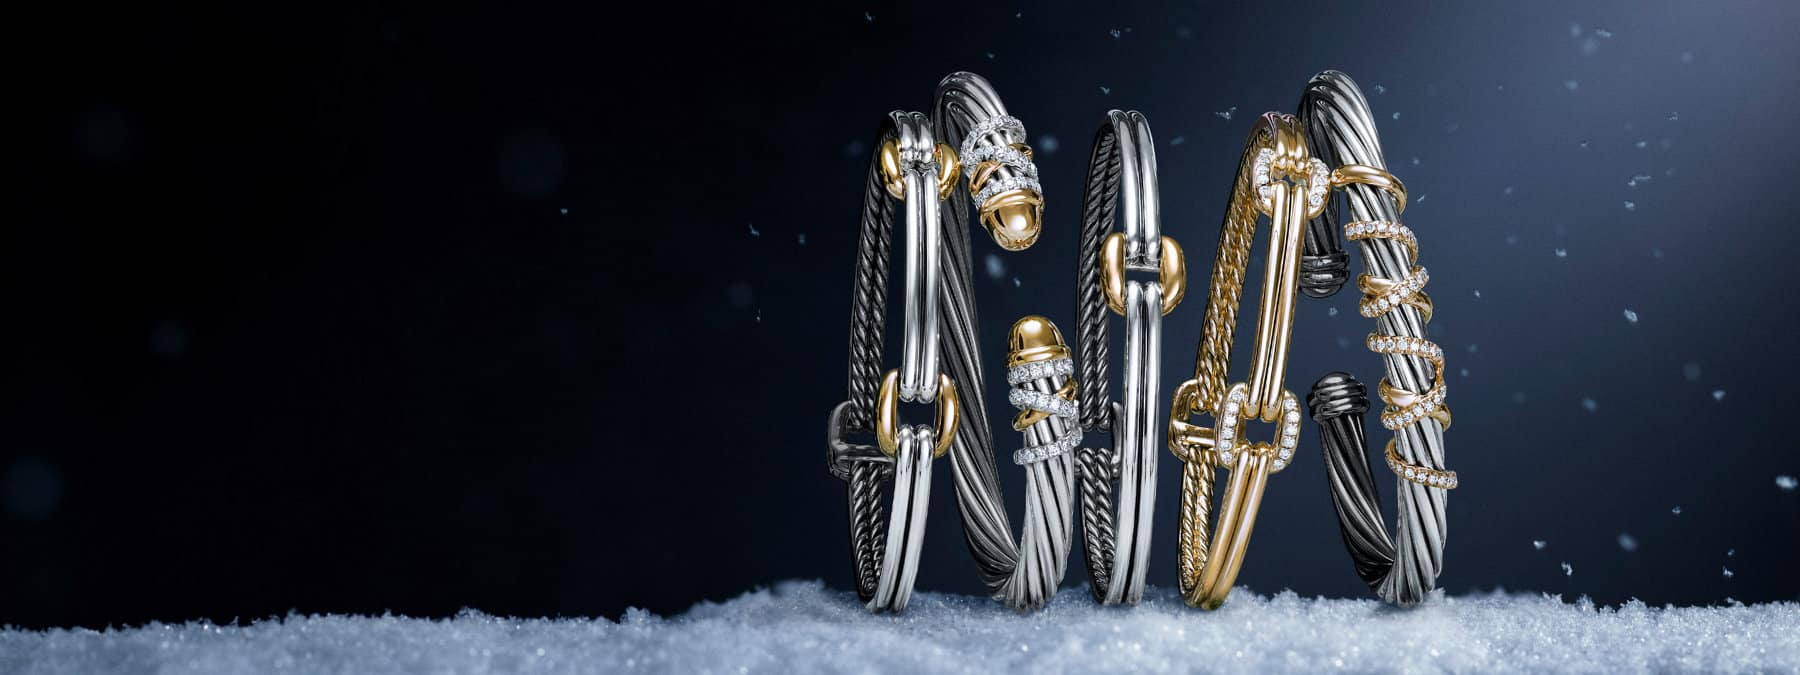 A color photo shows a horizontal stack of five David Yurman bracelets for women from the Thoroughbred and Helena collections leaning against each other. Four women's bracelets are crafted from sterling silver with 18K yellow gold cushion links, pavé-white-diamond-encrusted threads or bonded domes. One women's bracelet is crafted from 18K yellow gold with cushion links encrusted with pavé white diamonds. The jewelry is shot on a stone surface covered with snow at night.